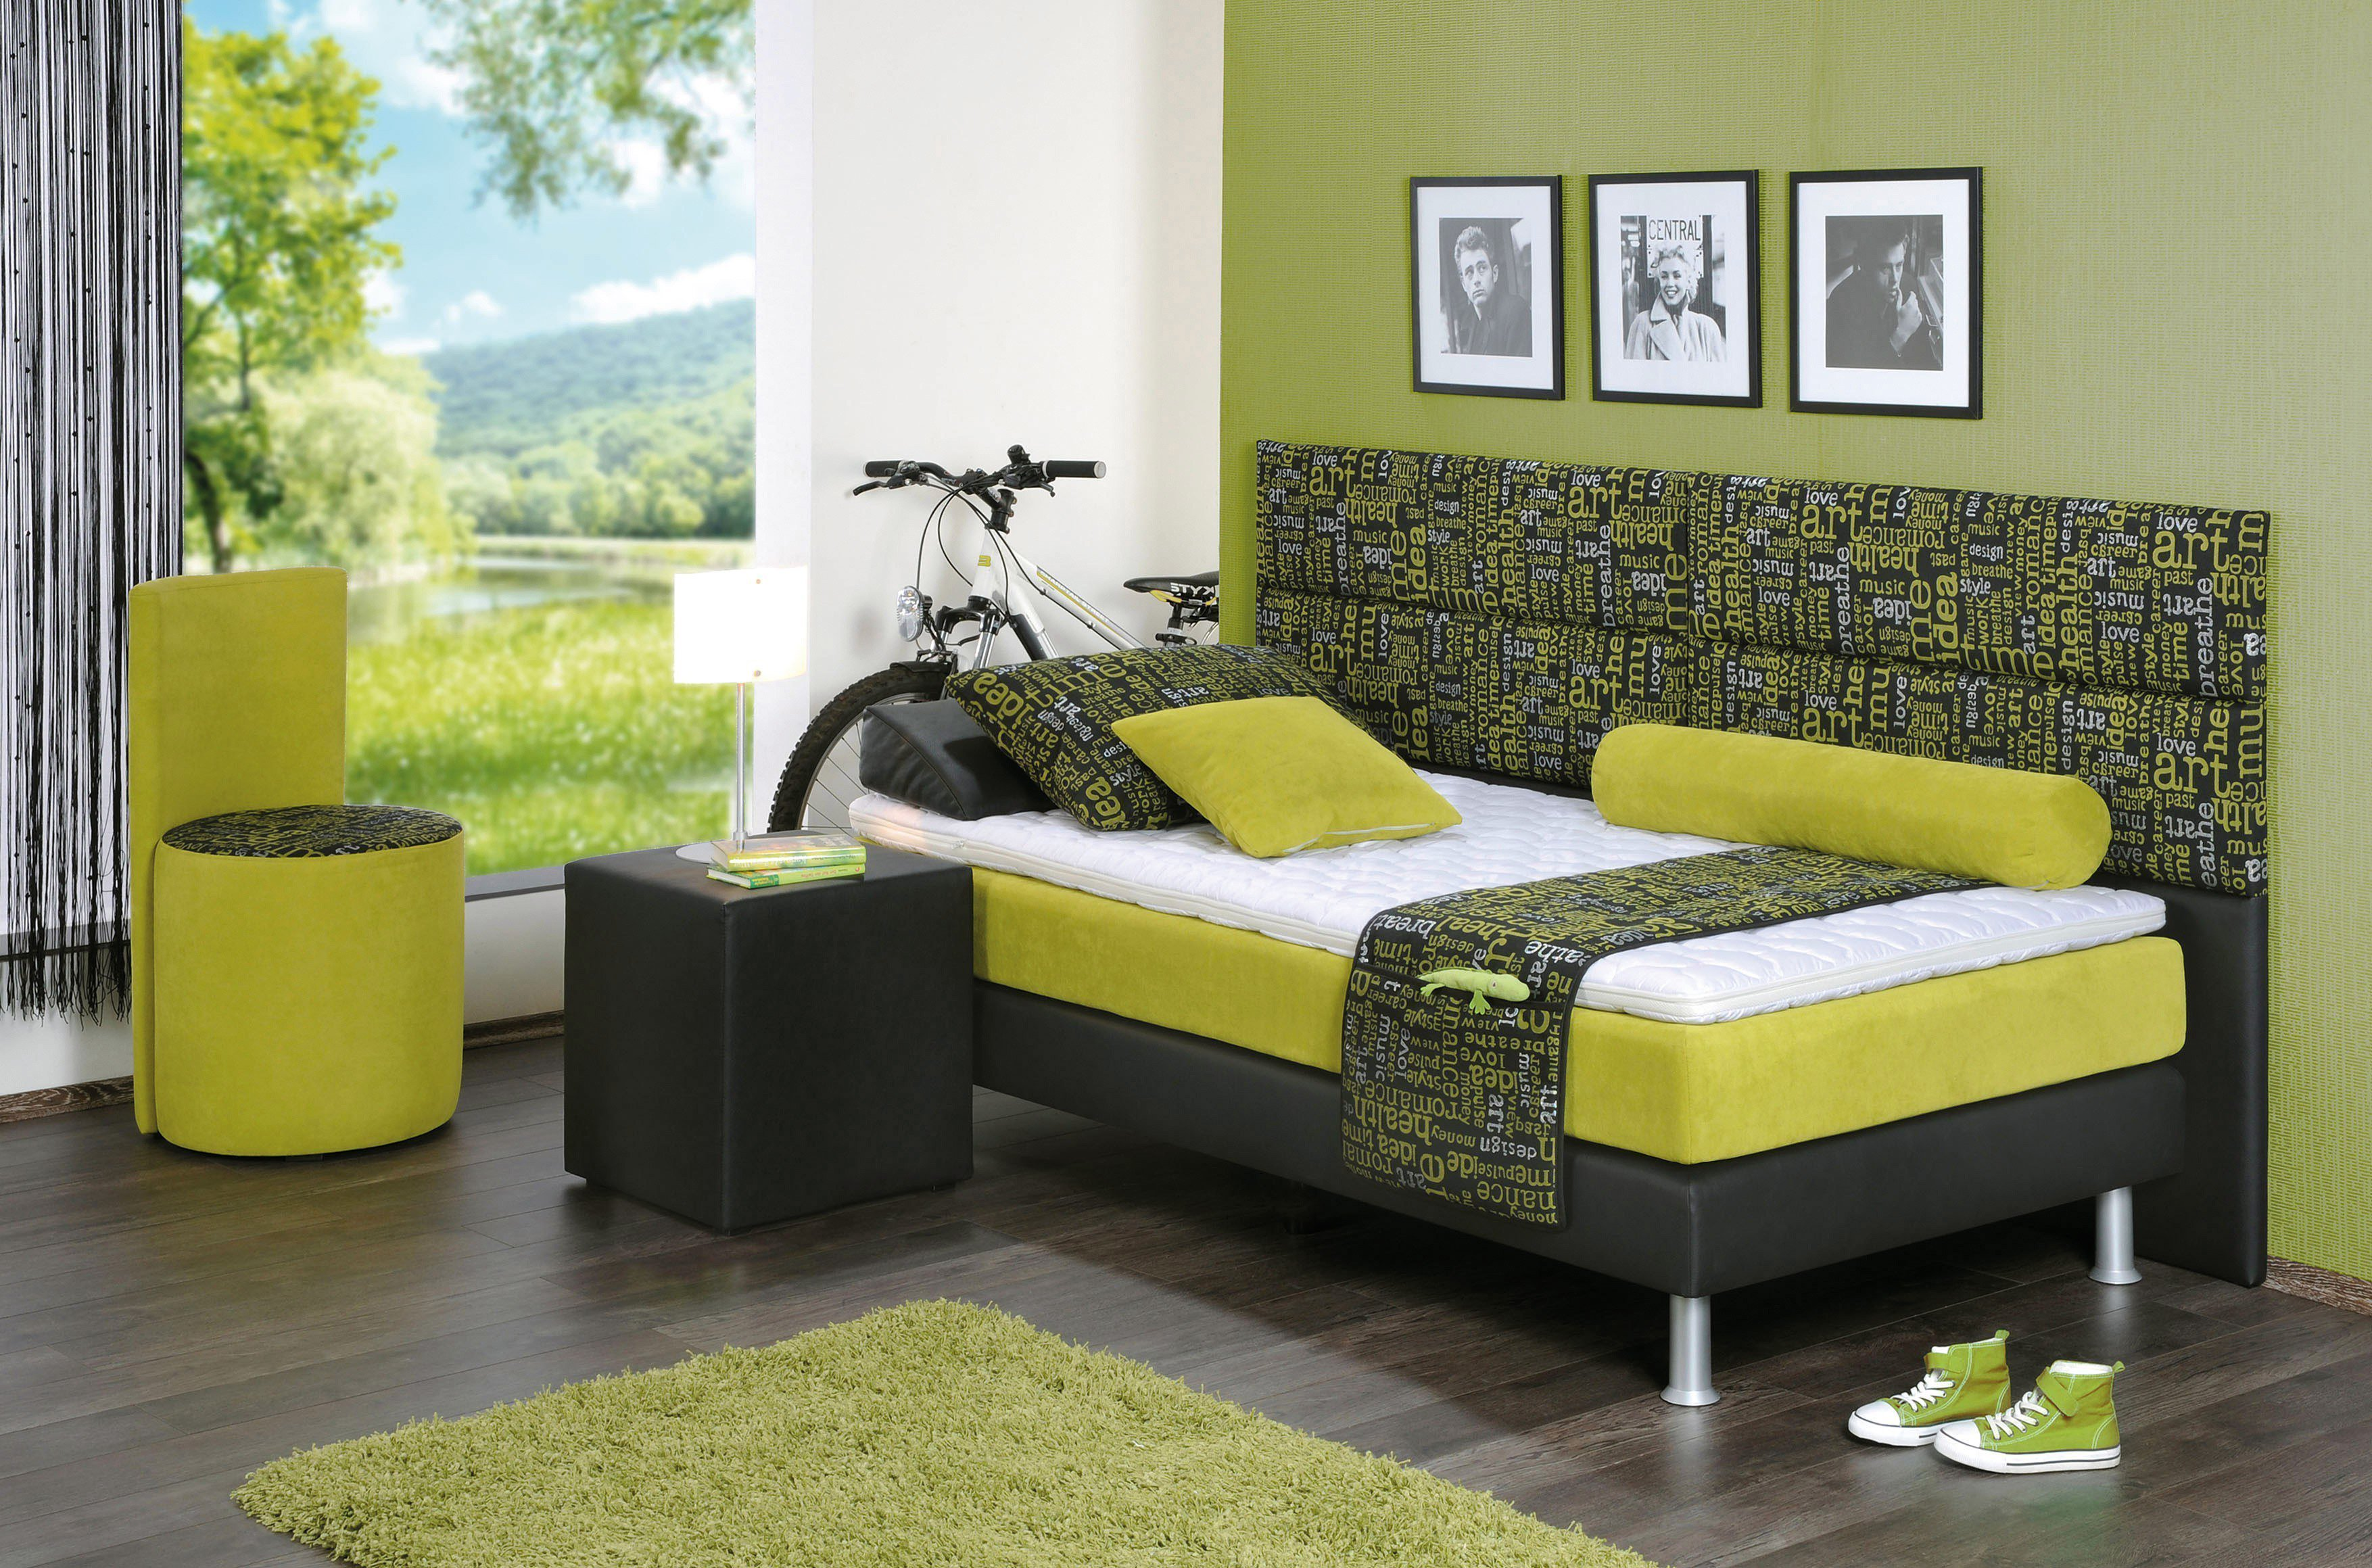 boxspringbett youngster von oschmann in gr n schwarz. Black Bedroom Furniture Sets. Home Design Ideas